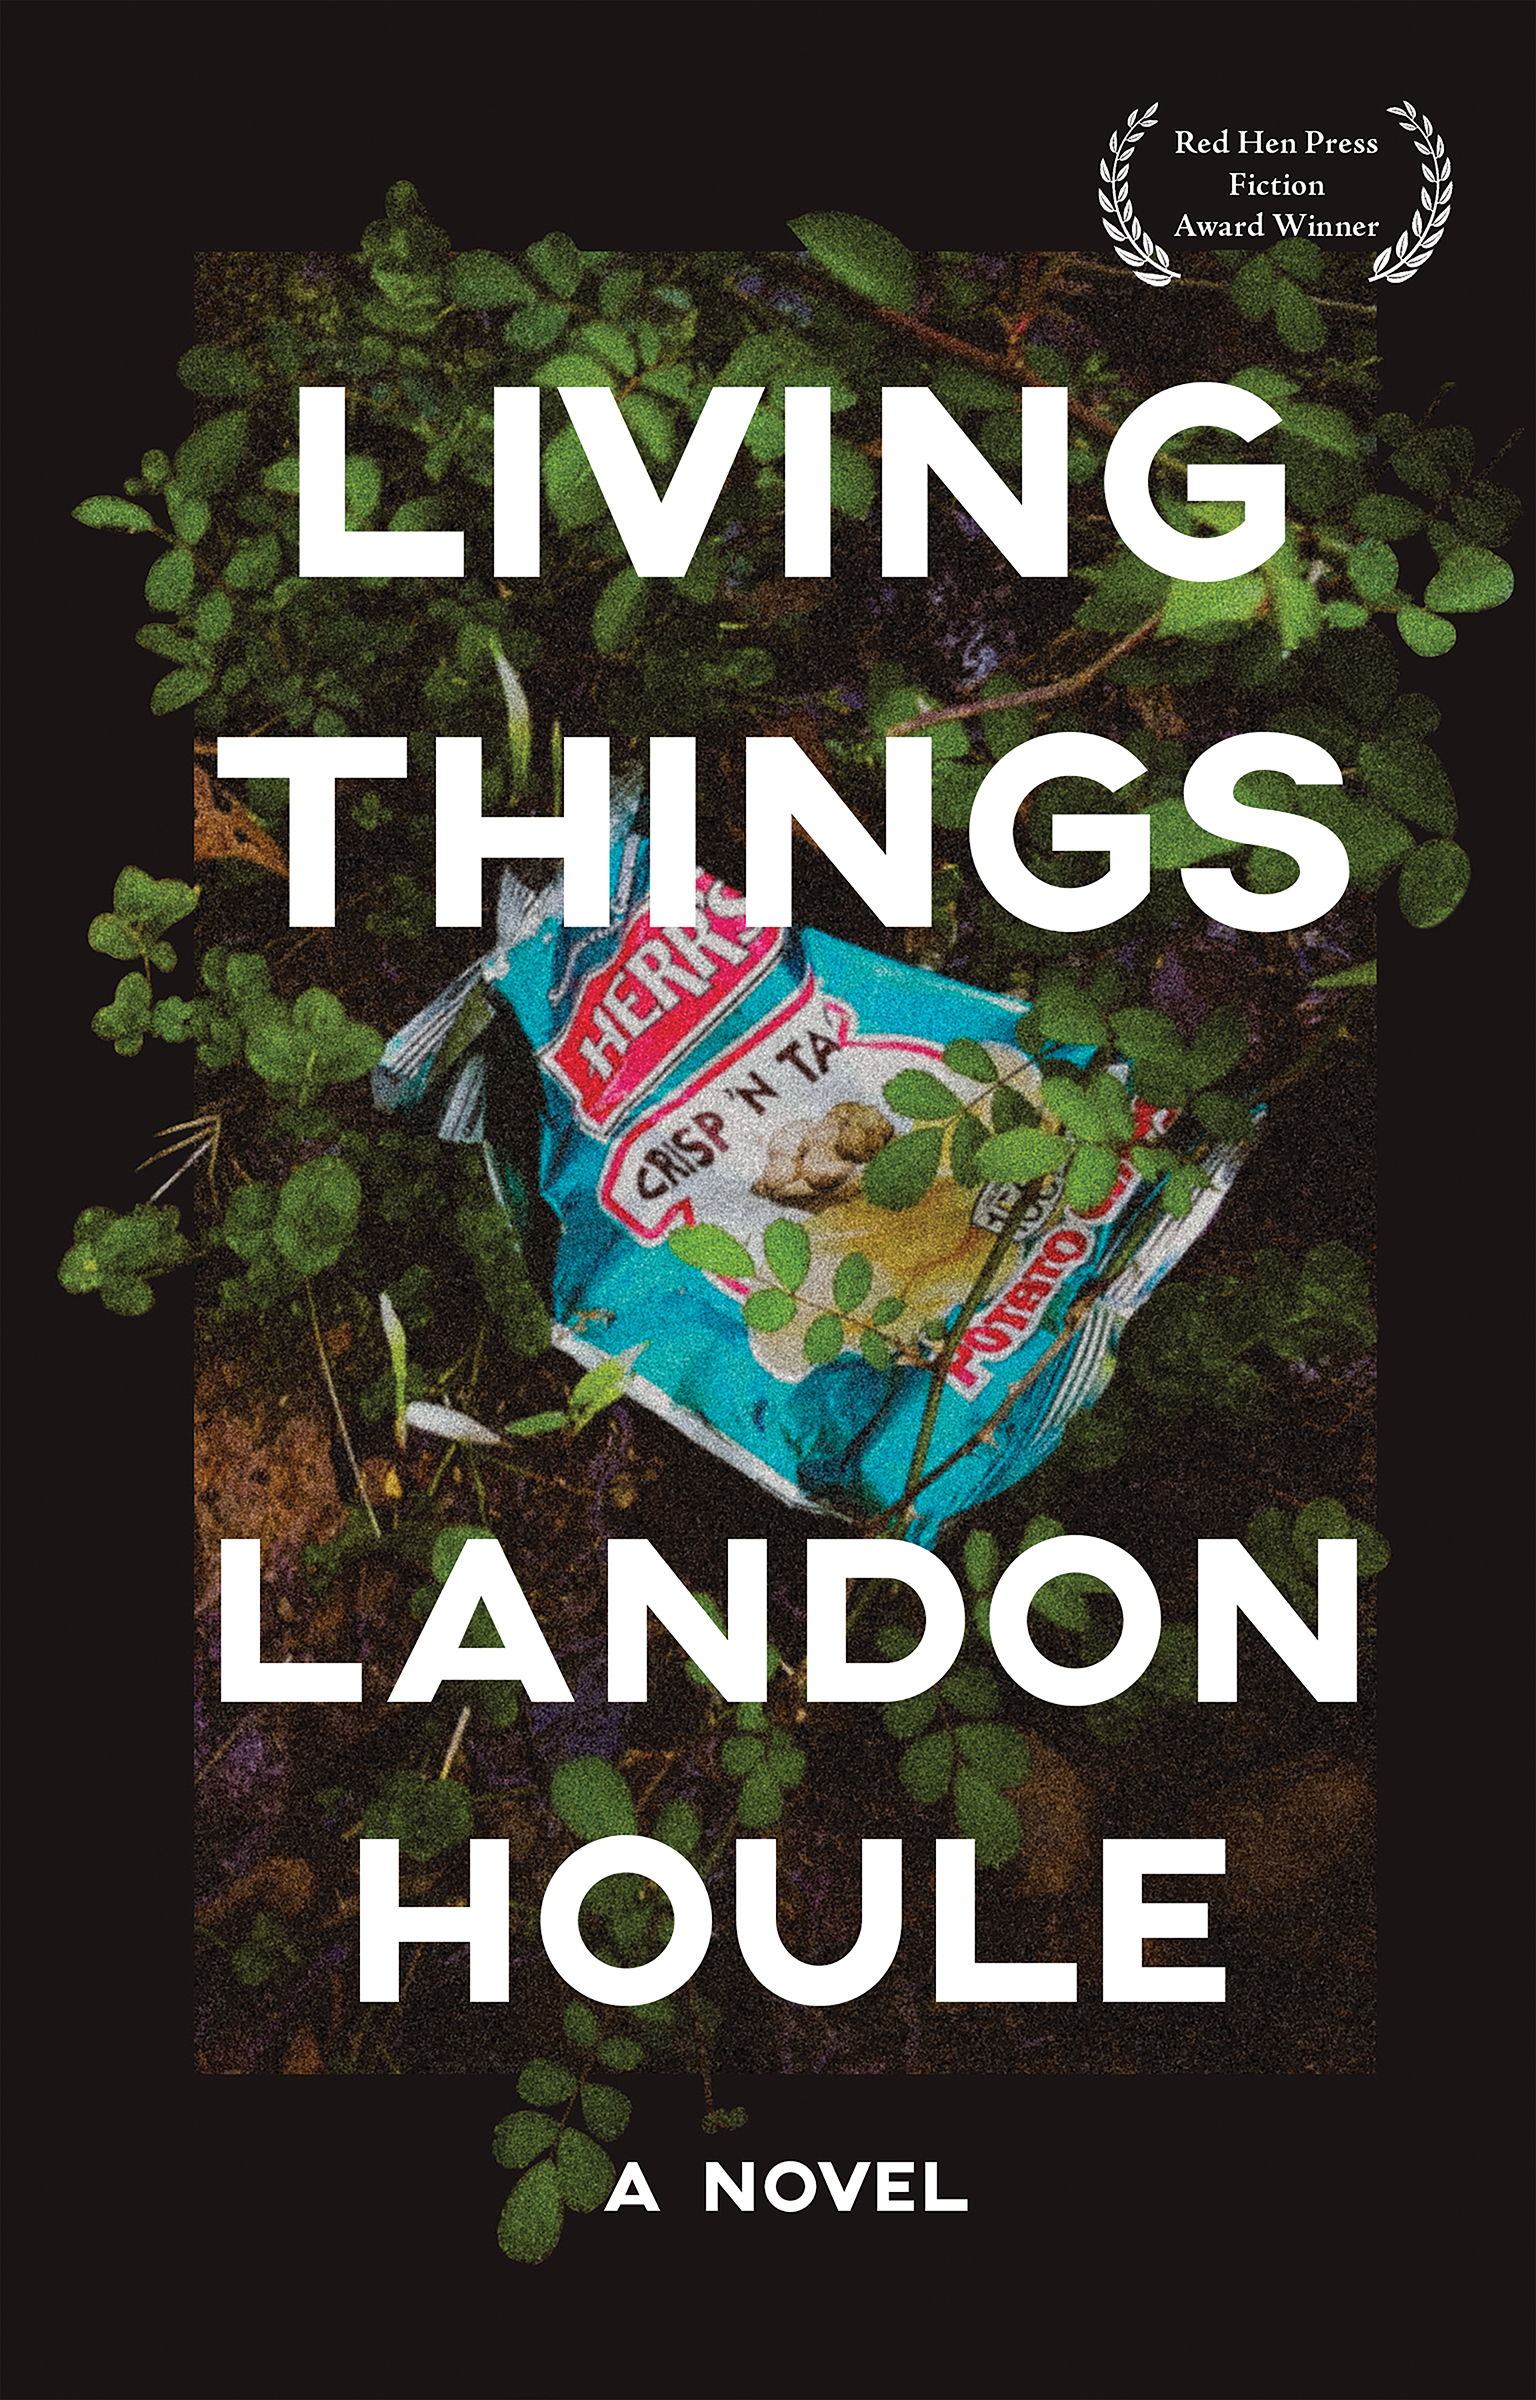 A grainy photograph of a potato chips bag thrown in the dirt in between leaves and white script that reads Living Things a novel by Landon Houle.